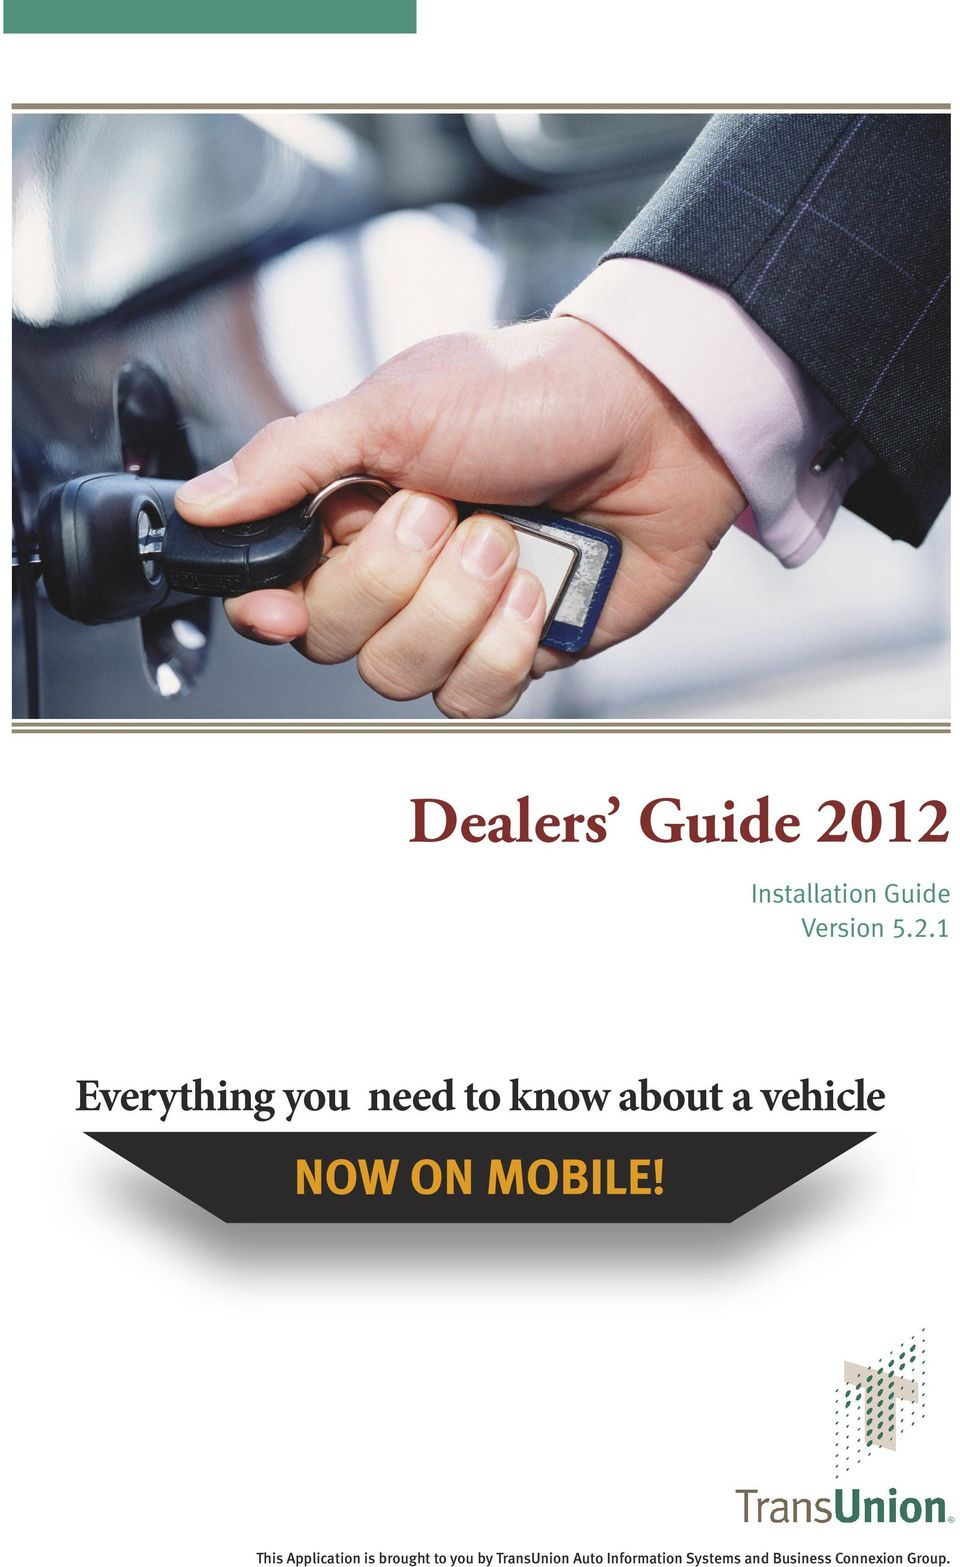 need to know about a vehicle NOW ON MOBILE!